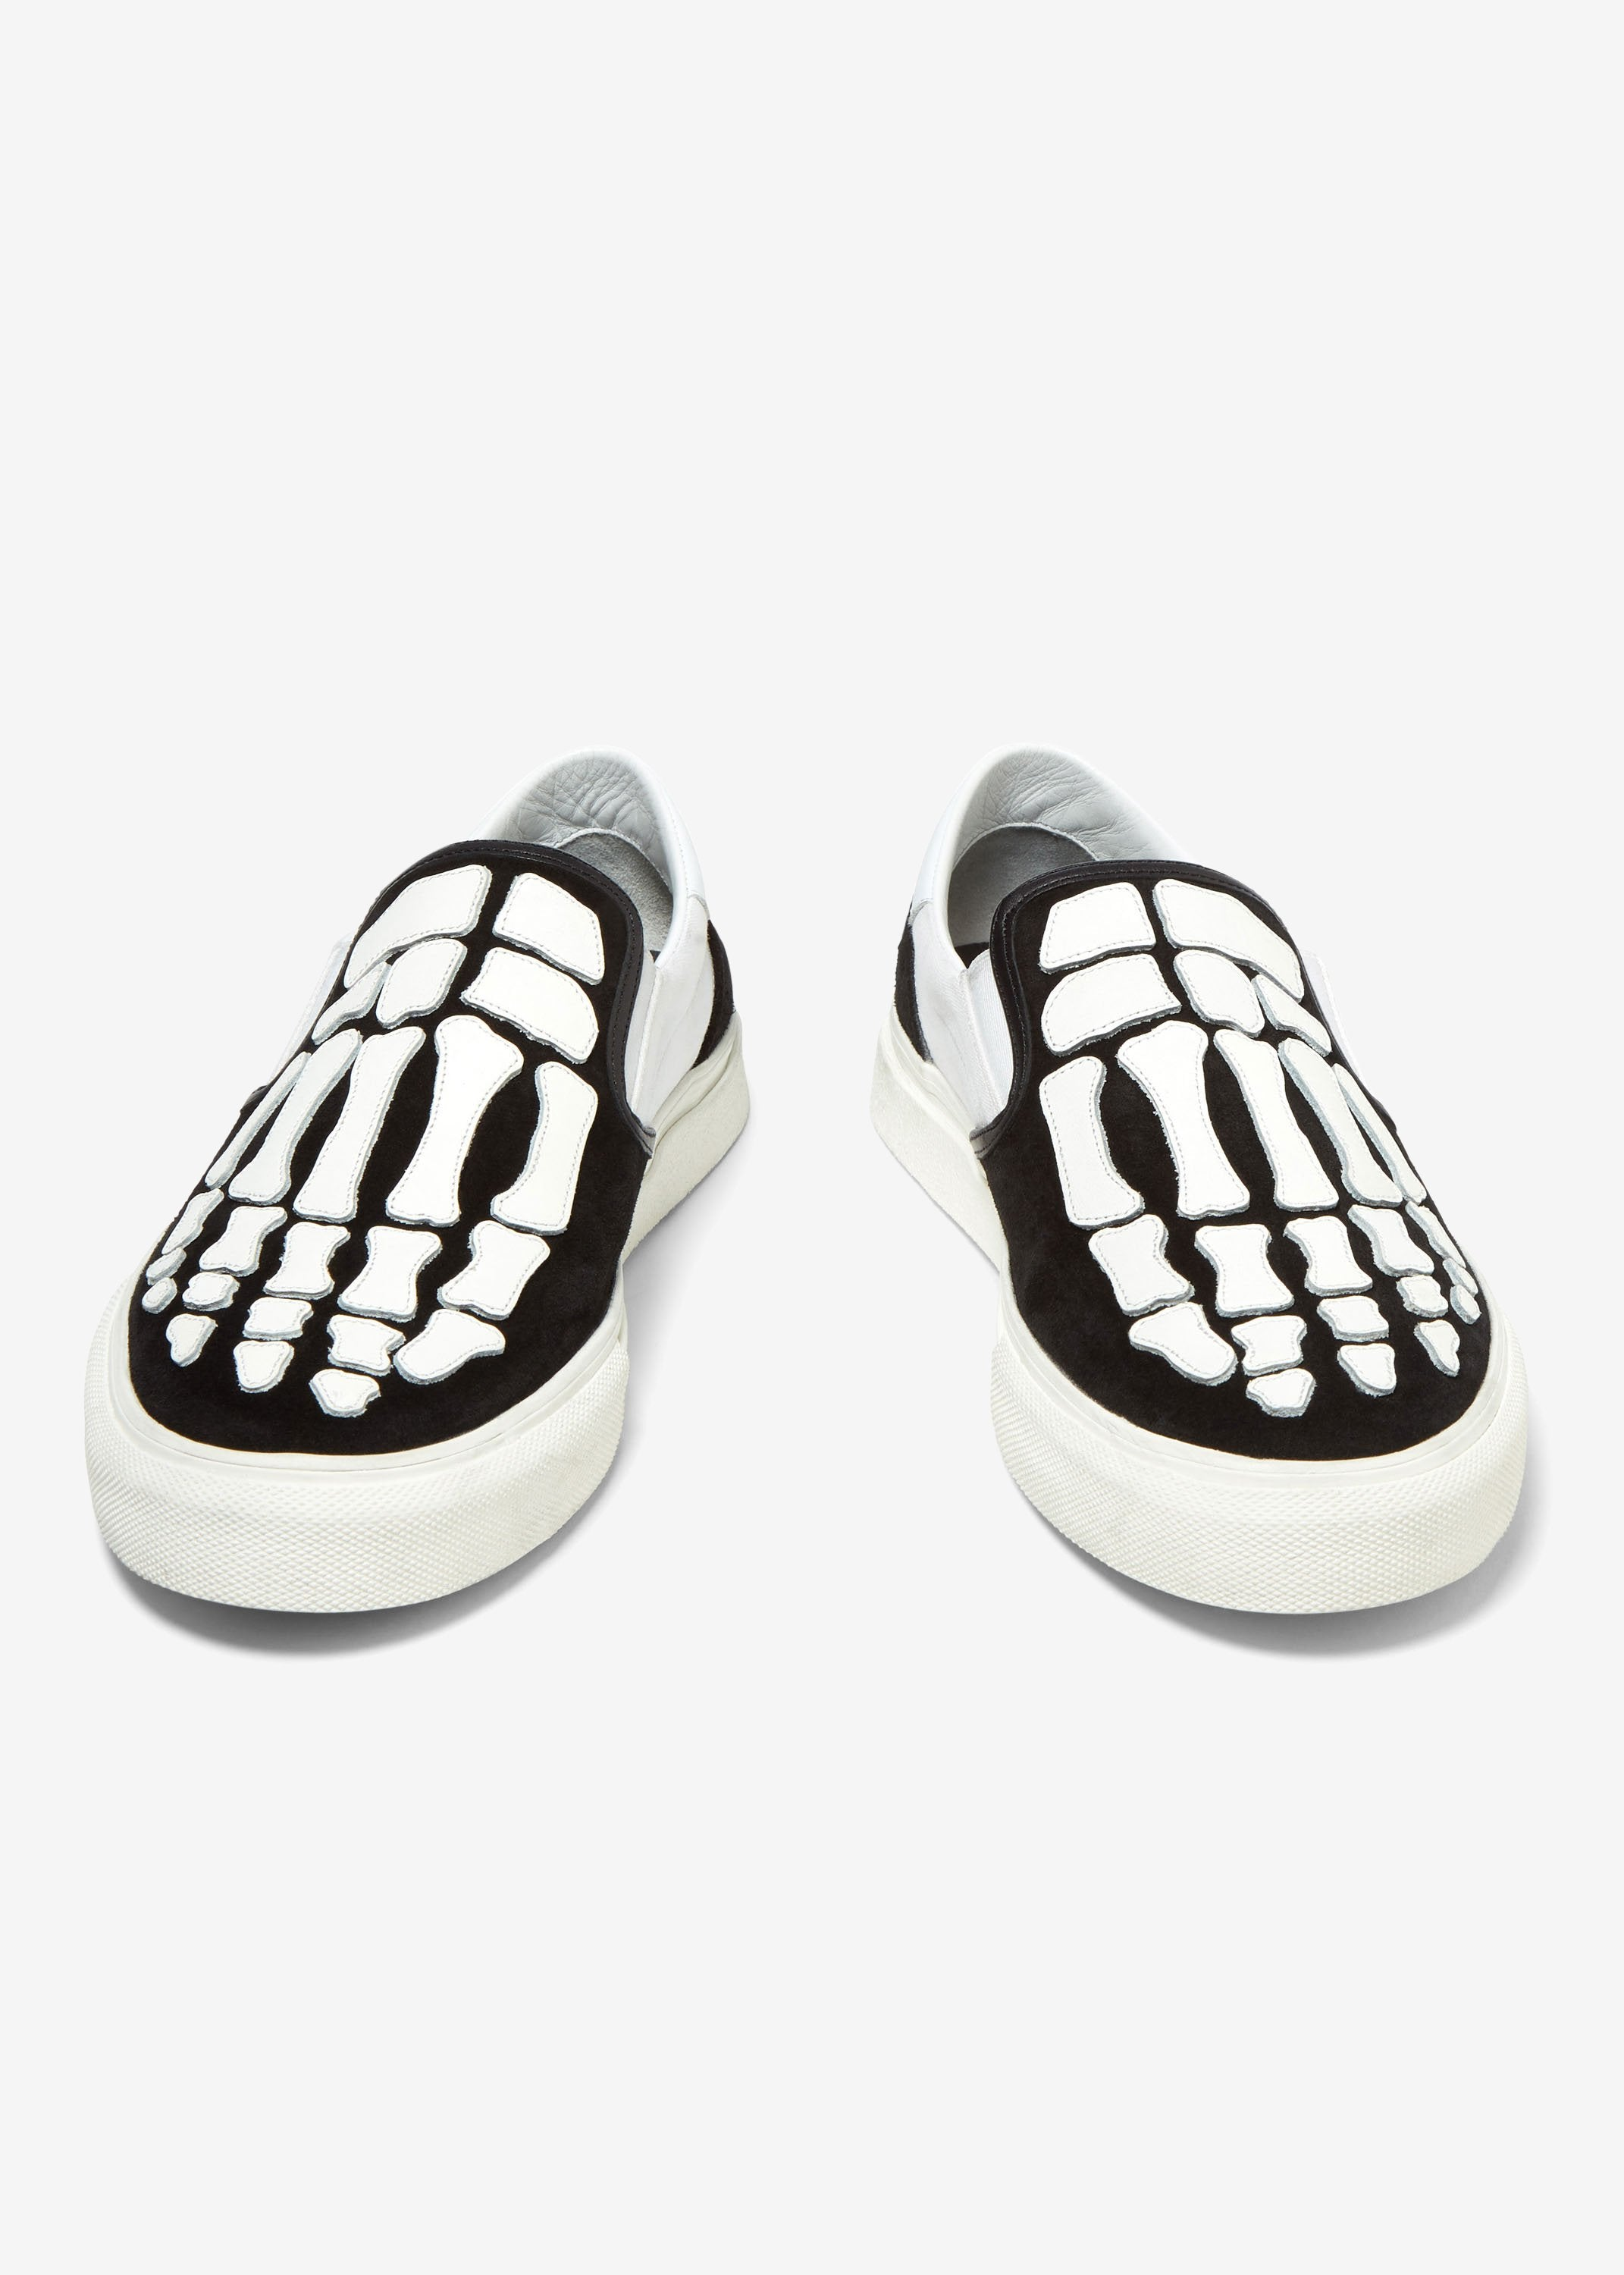 skel-toe-slip-on-black-white-image-2